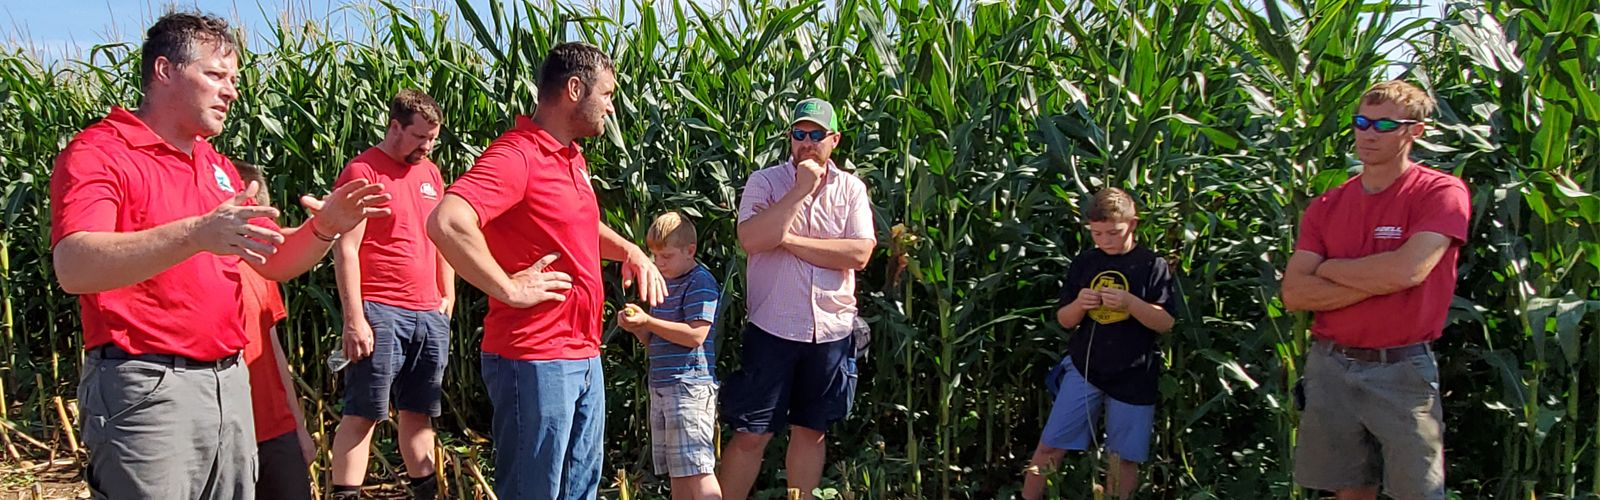 Several men and boys stand in an opening in a corn field, which has been partially harvested, listening to a man in a red shirt talk.